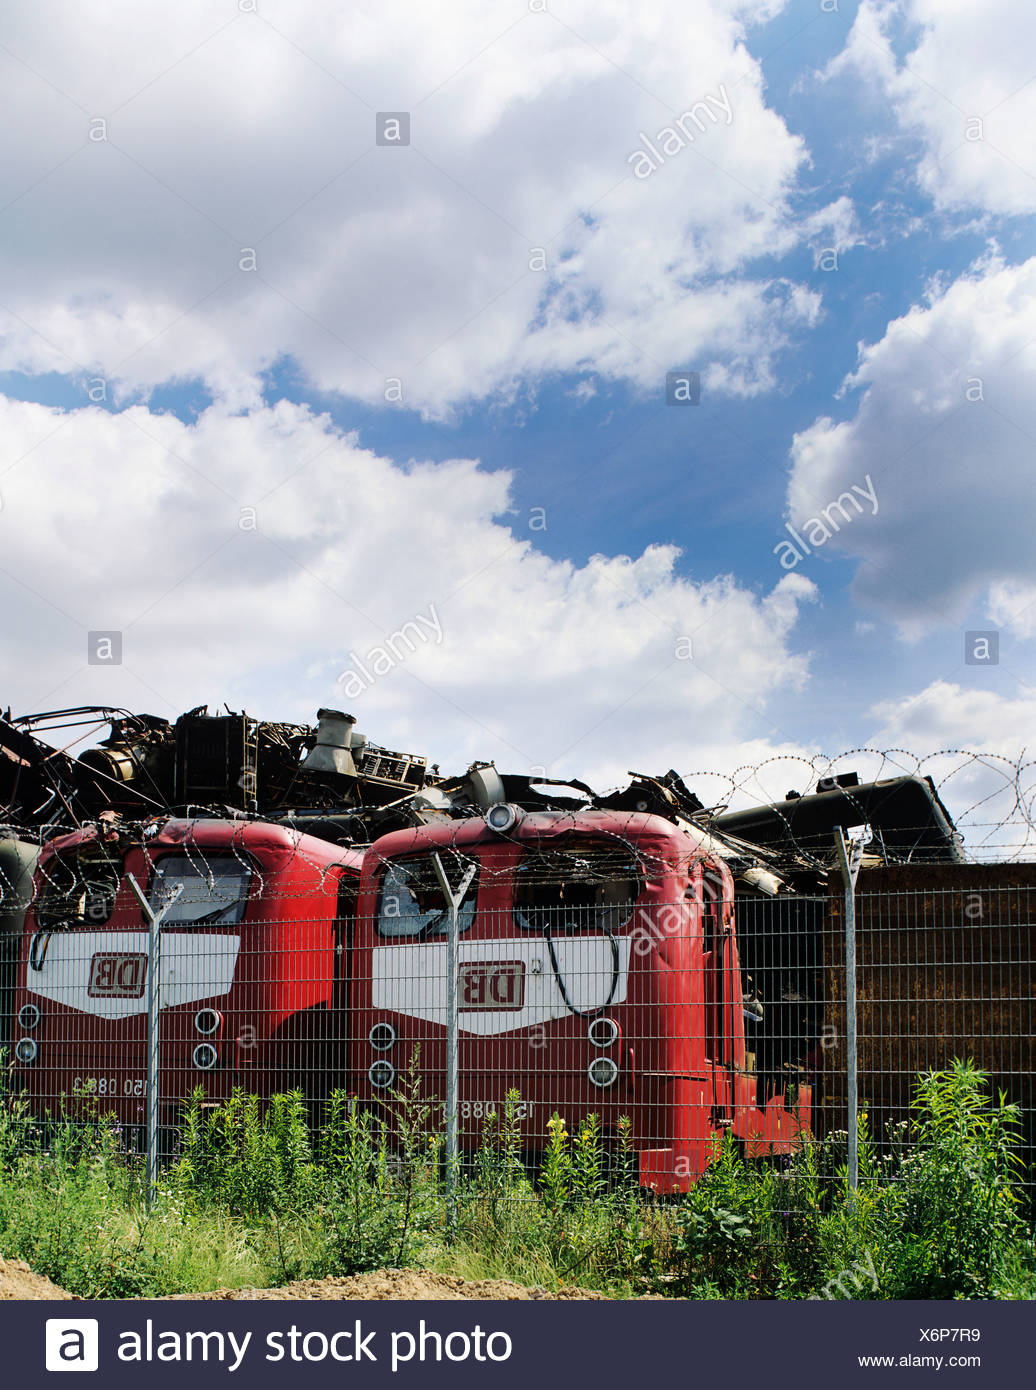 Electric locomotives in a scrapyard, behind them piled-up old metal parts - Stock Image